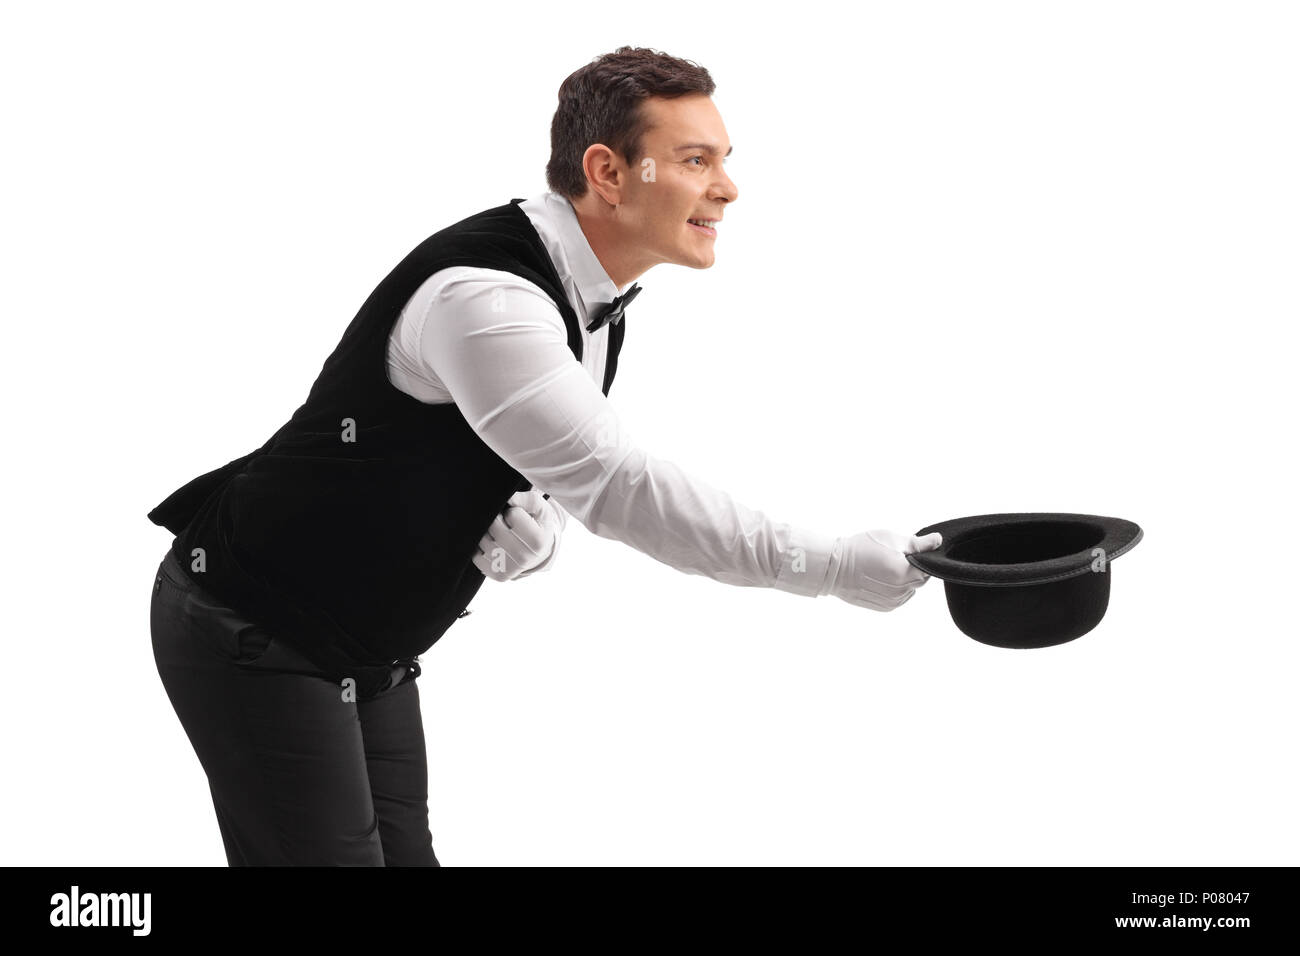 Waiter bowing down and taking his hat off isolated on white background - Stock Image